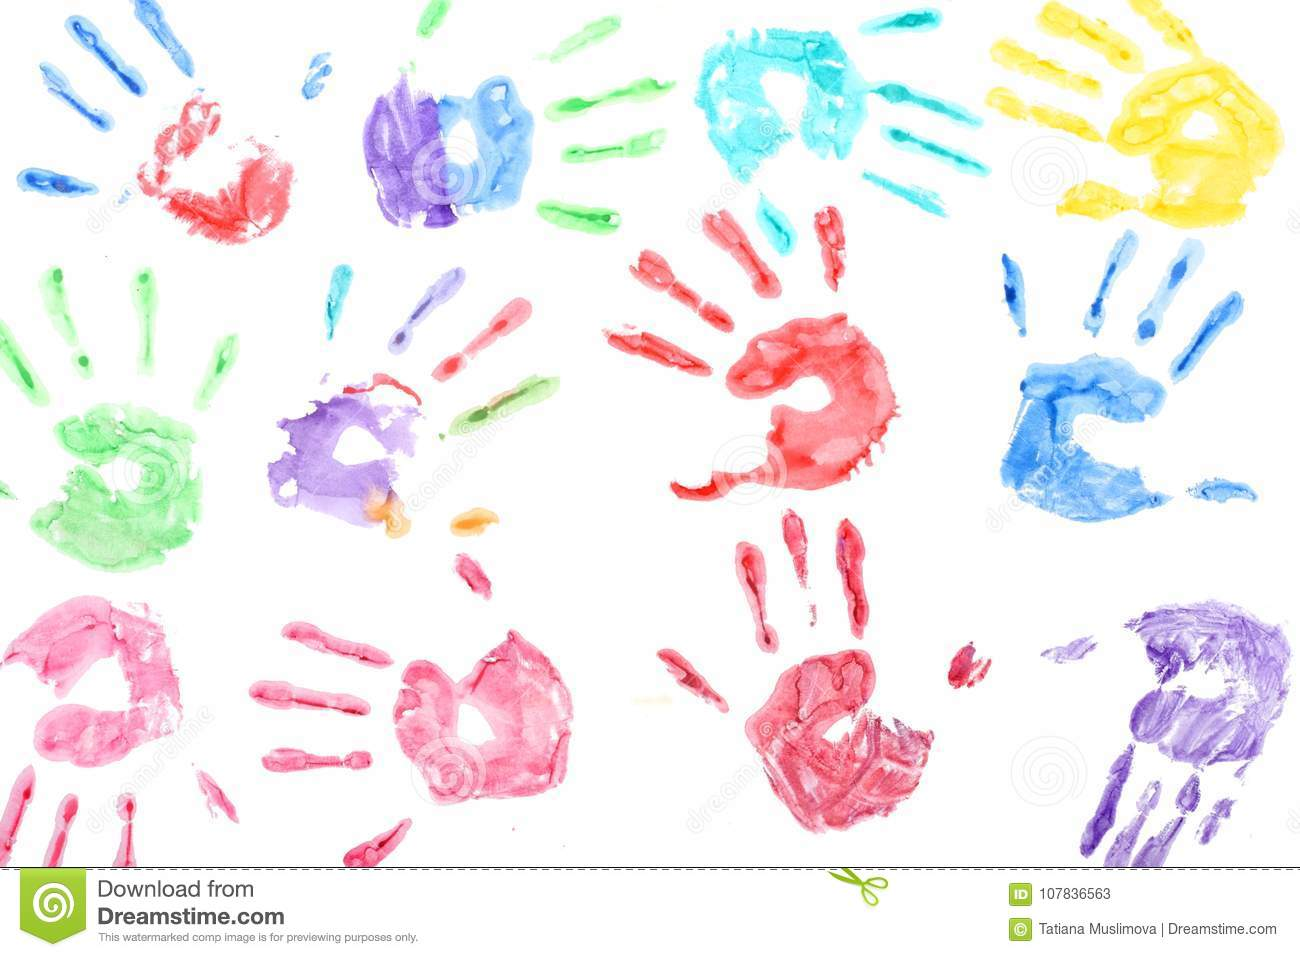 Seamless pattern with rainbow colored kids hand prints on white background